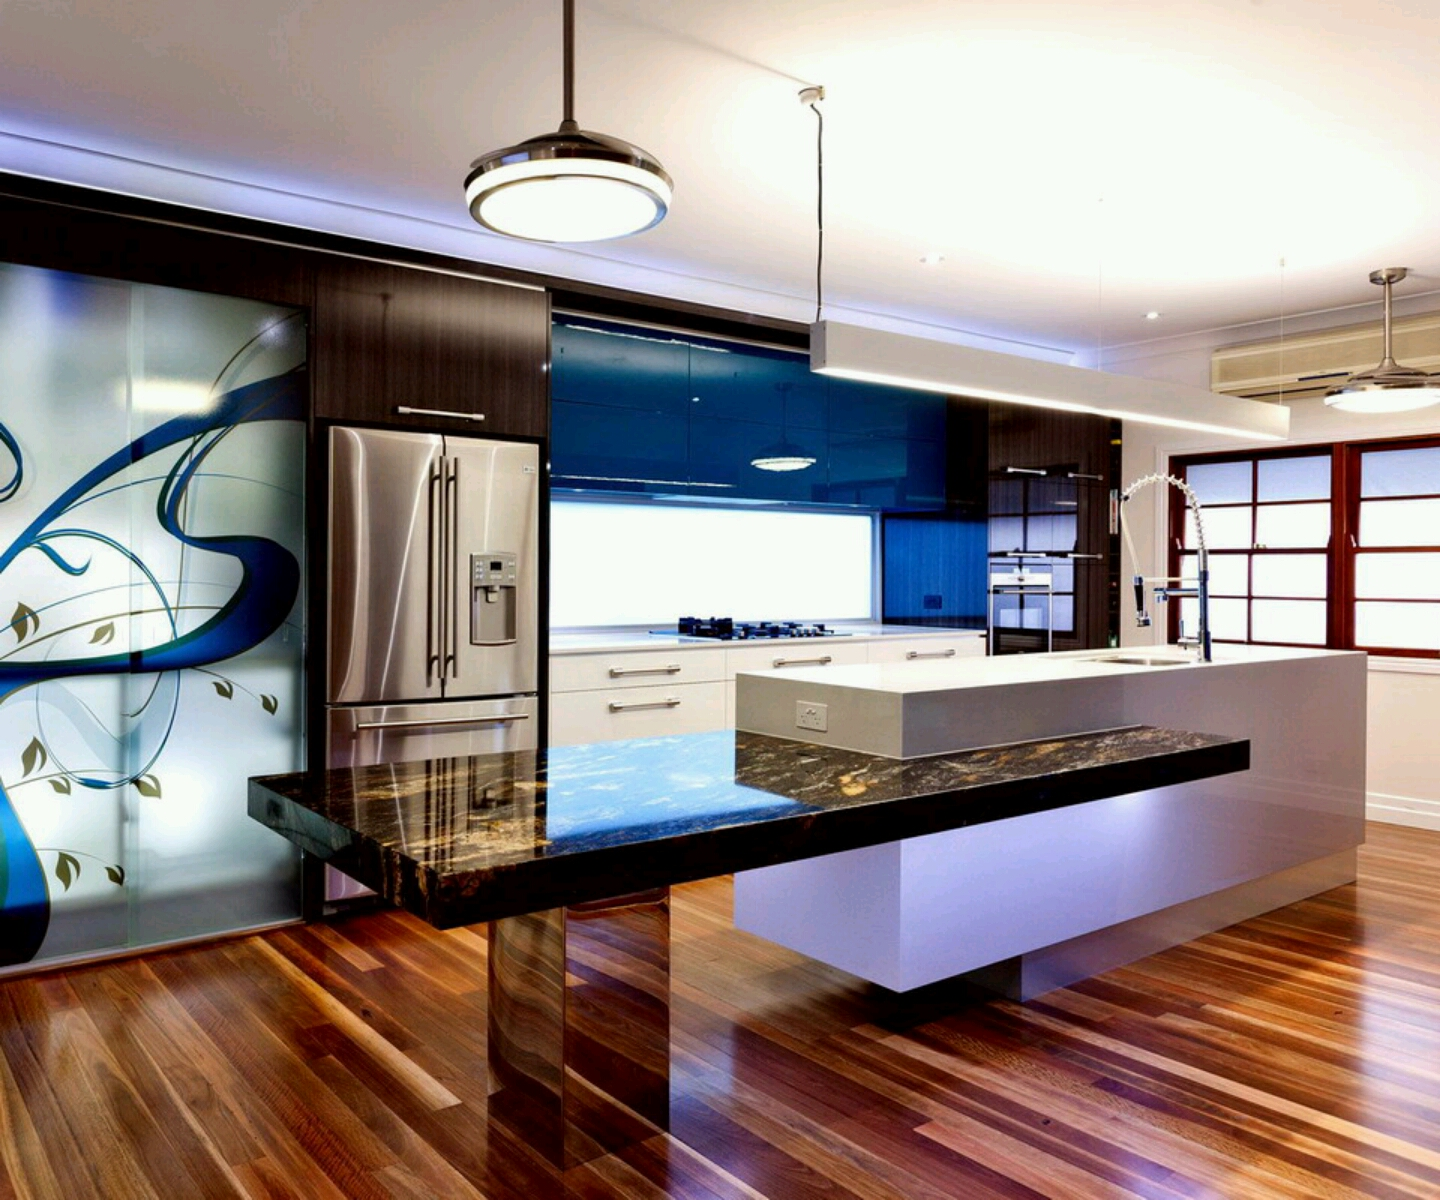 Ultra modern kitchen designs ideas new home designs for New style kitchen images